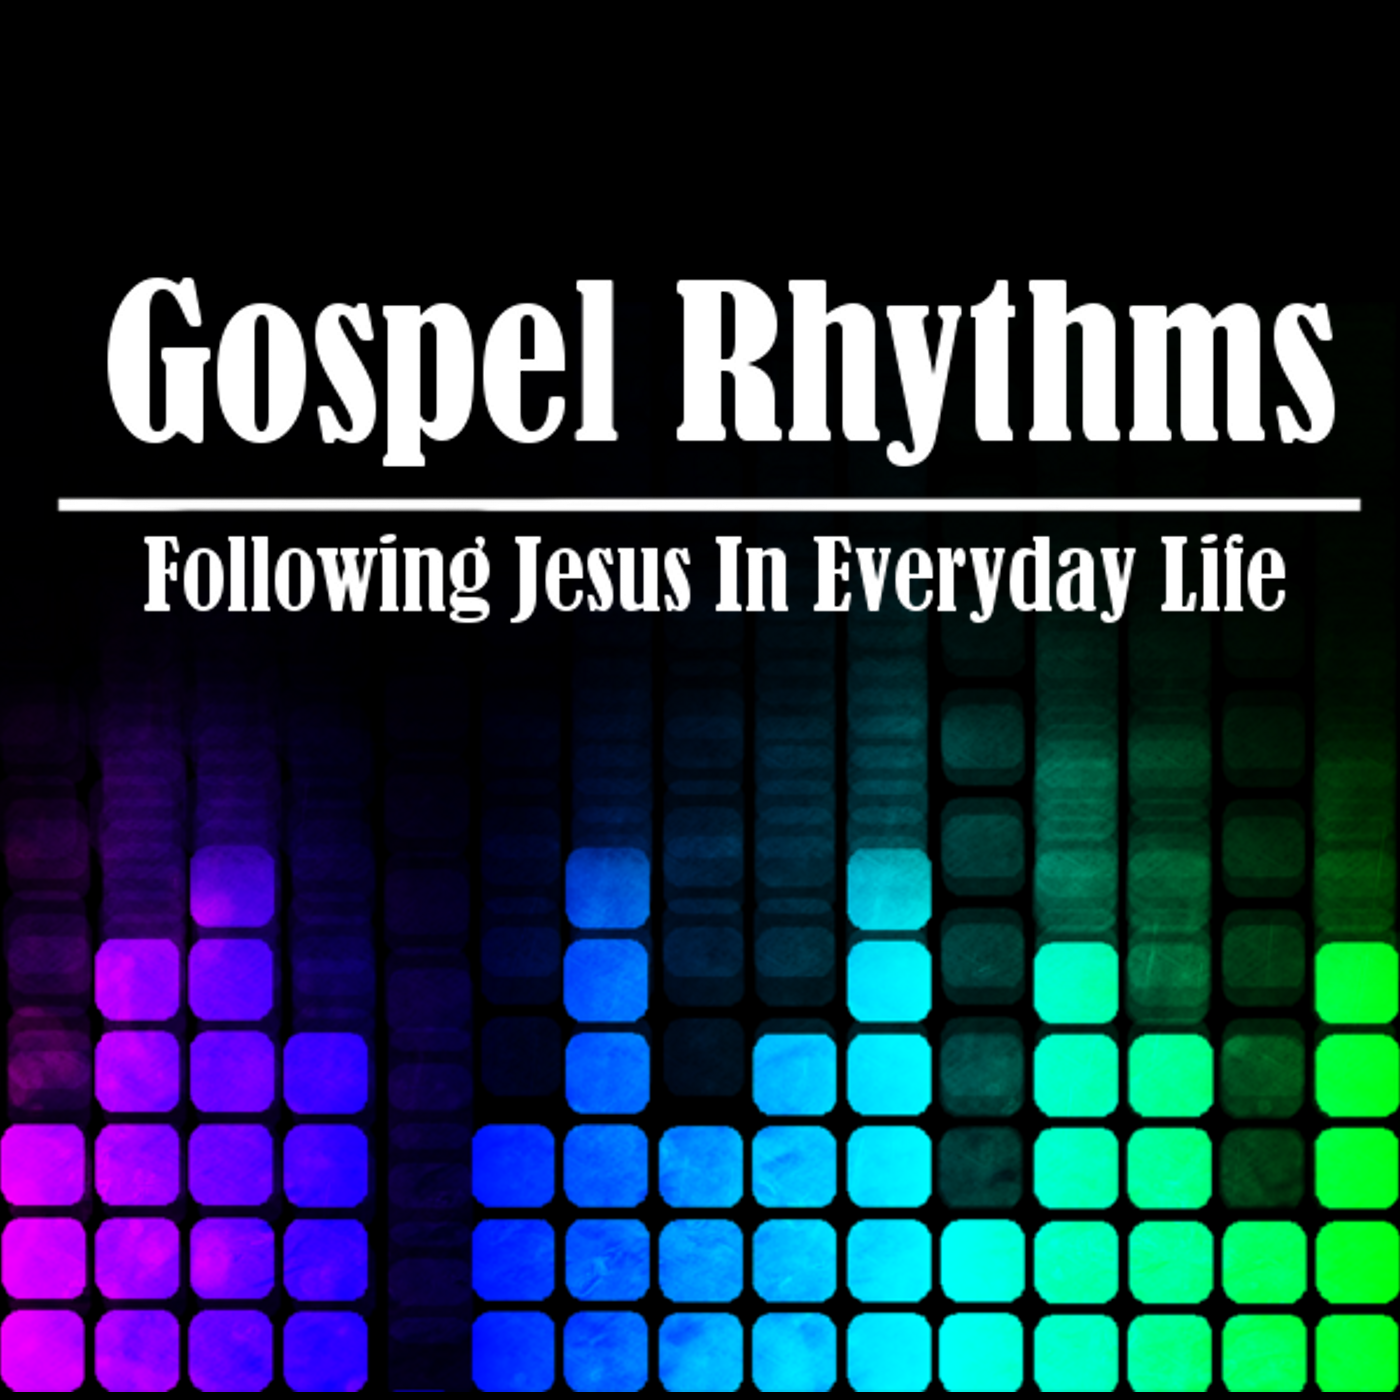 Gospel Rhythms: Following Jesus in Everyday Life